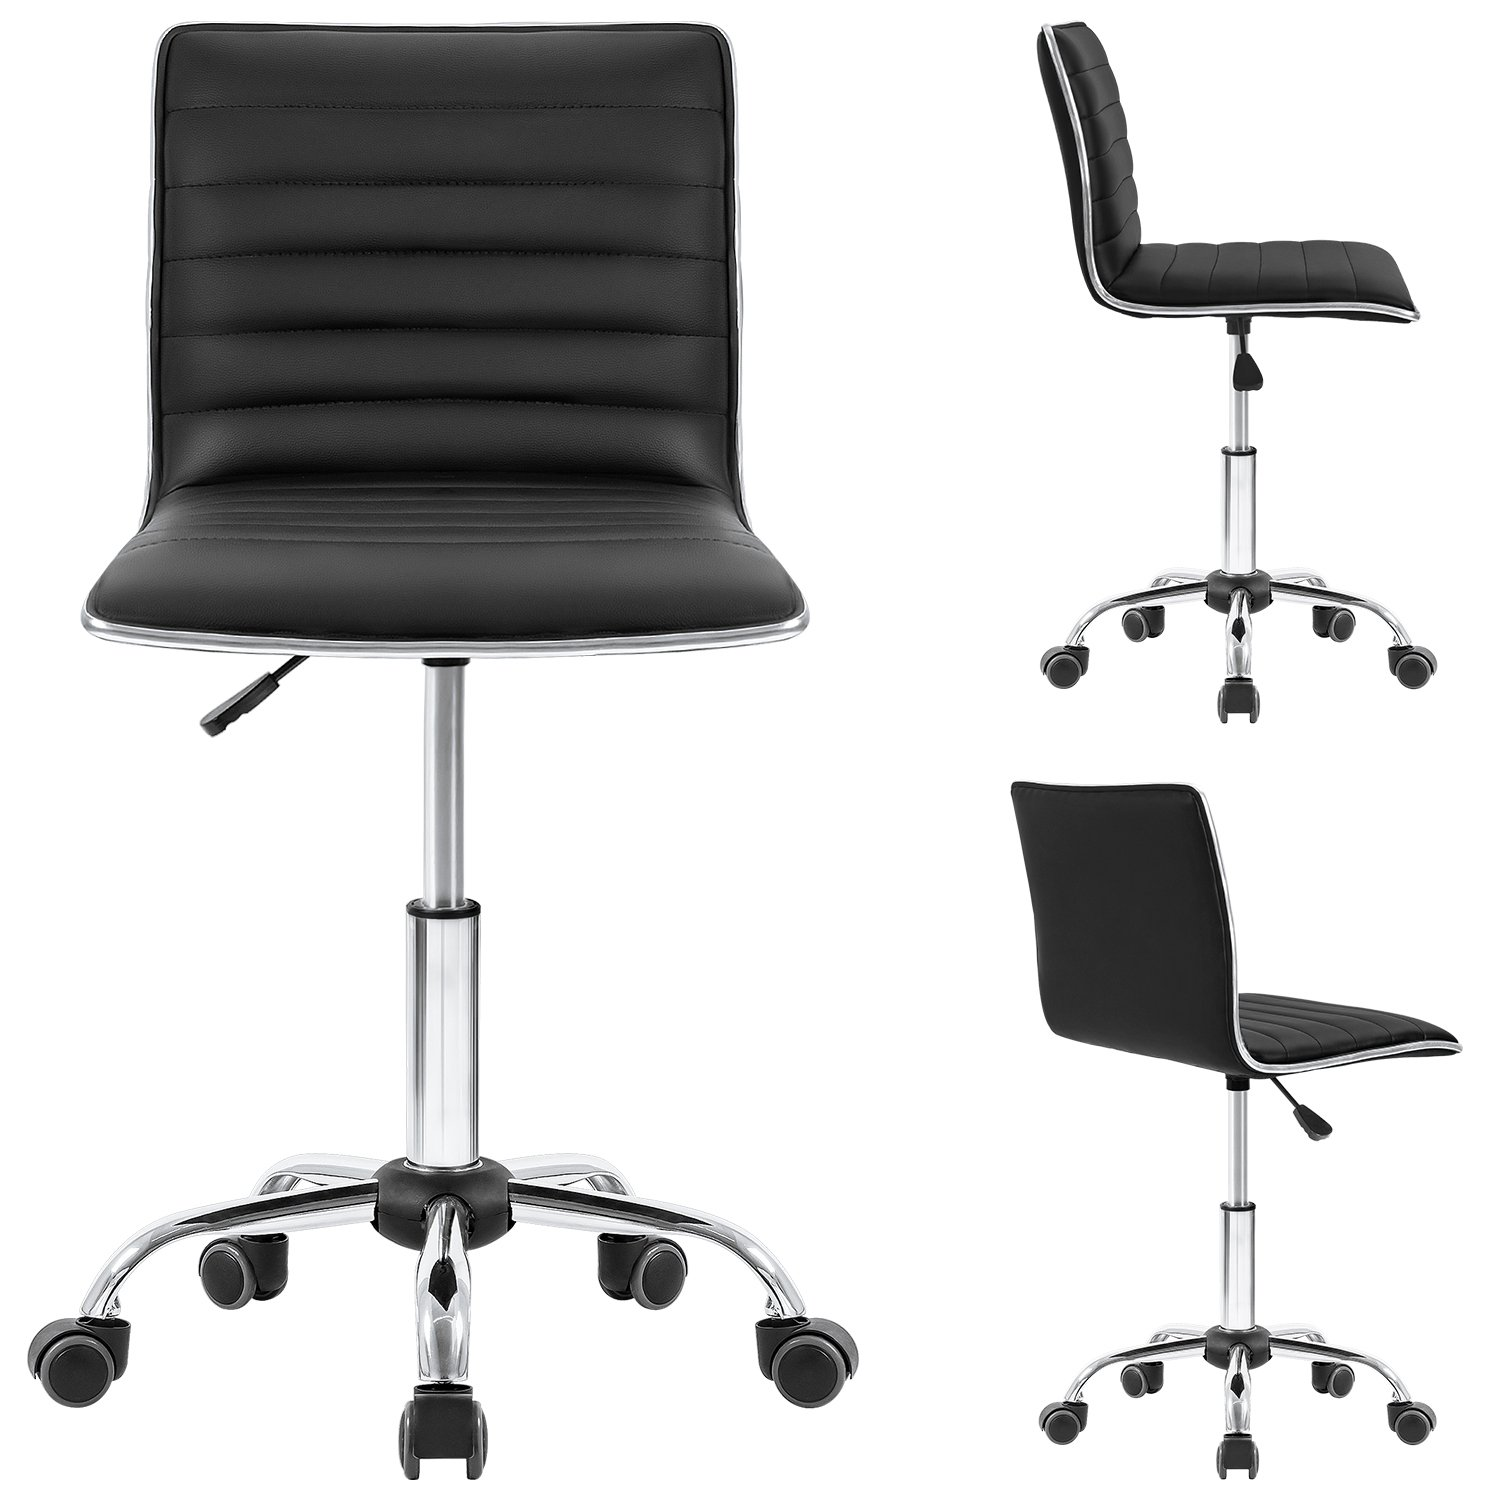 Homall Swivel Task Chair Desk Chair, Leather Vanity Computer Office Chair Rolling Adjustable Conference Chair Ribbed and Armless Chair Makeup Chair with Back Support(Black) by Homall (Image #2)